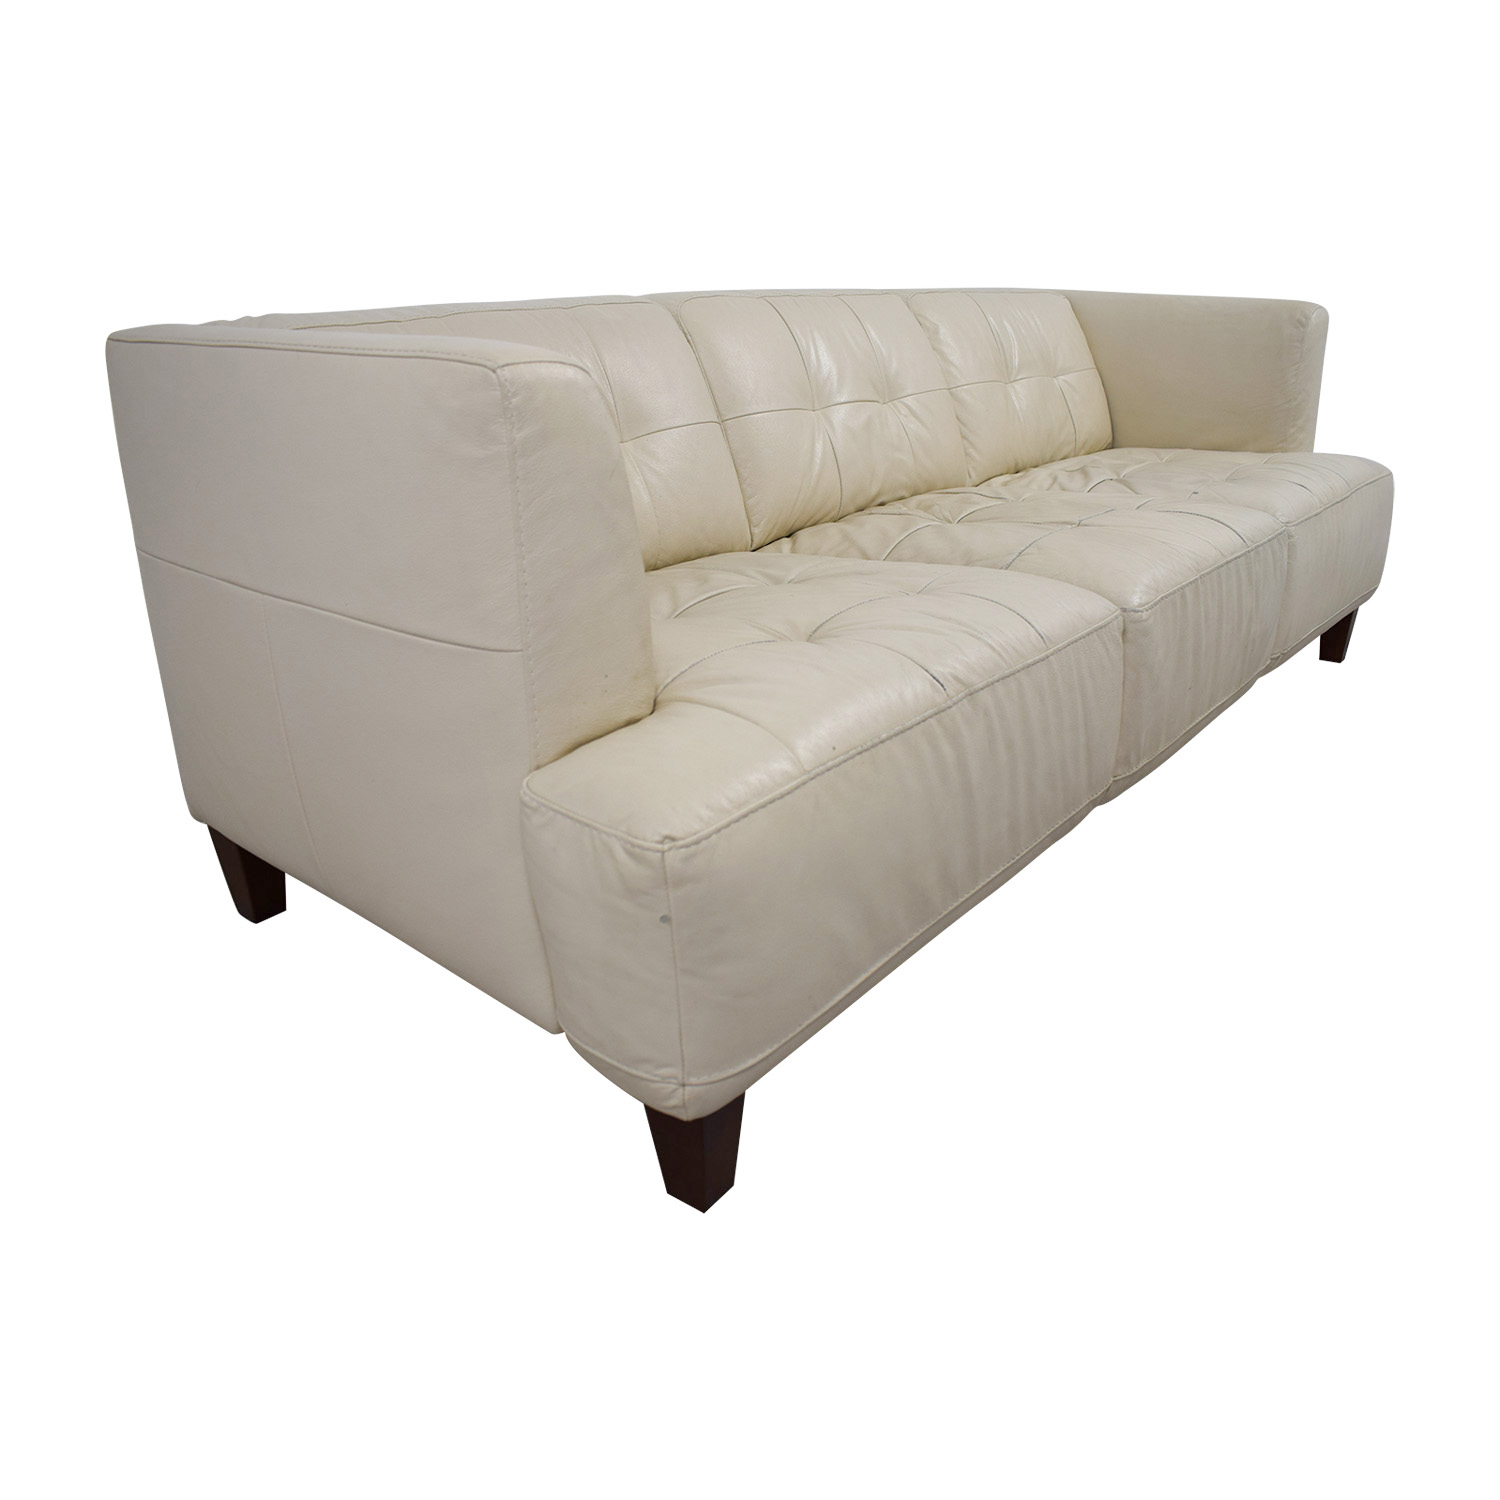 Chateau Dax Furniture Reviews: Chateau D'Ax Chateau D'Ax Kaleb Beige Tufted